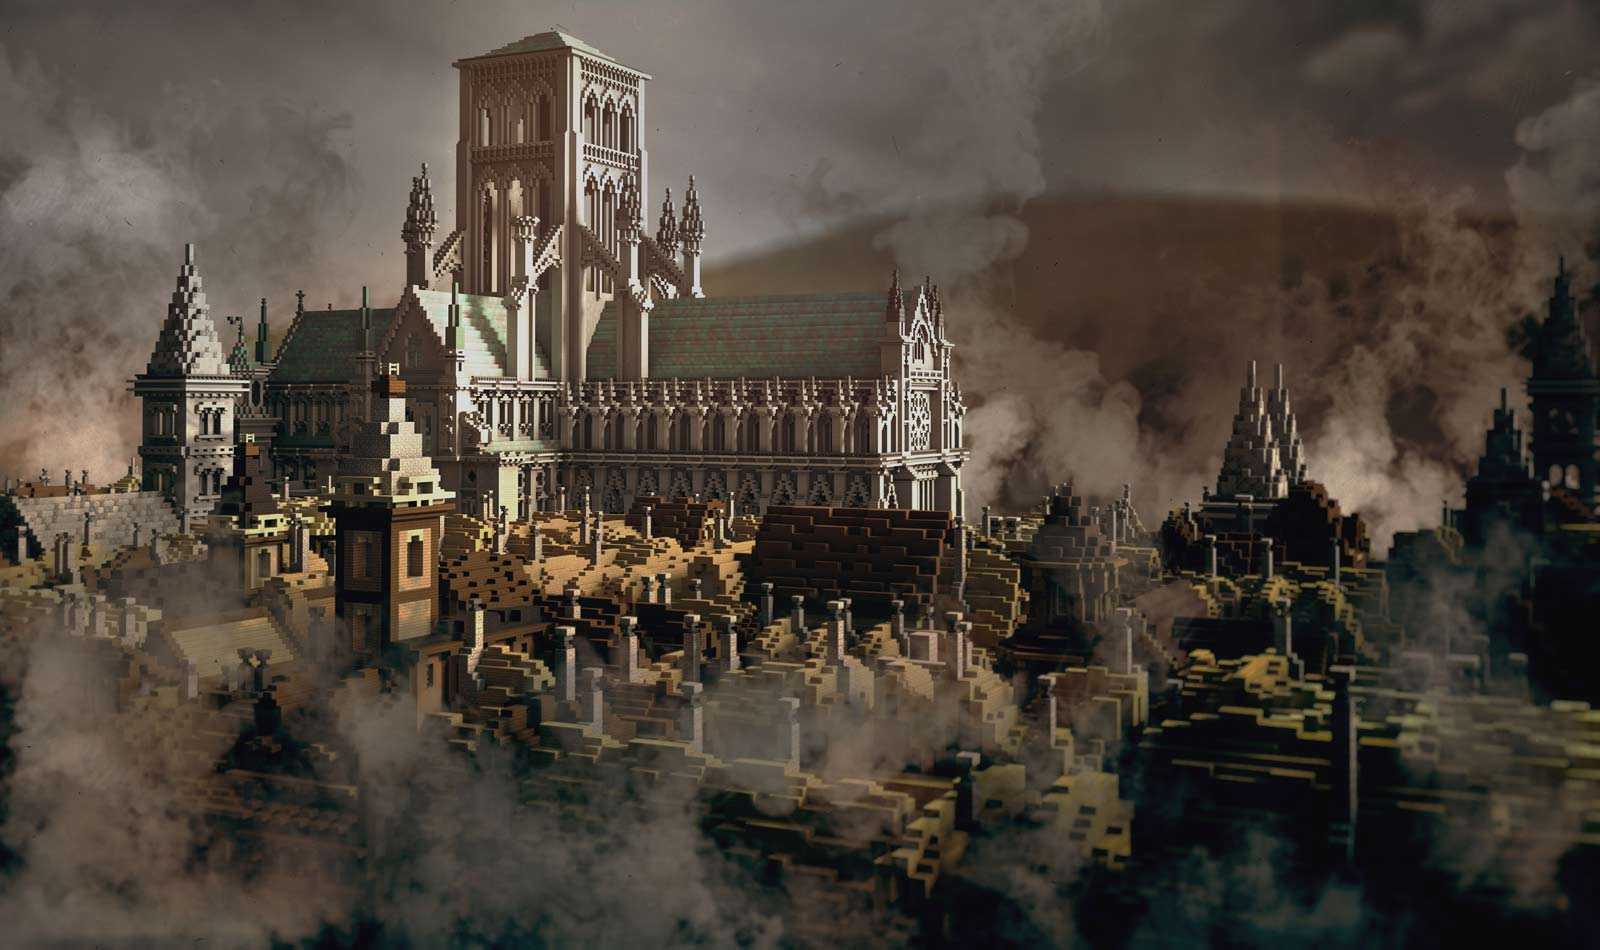 The Museum of London replicated the Great Fire of London in Minecraft